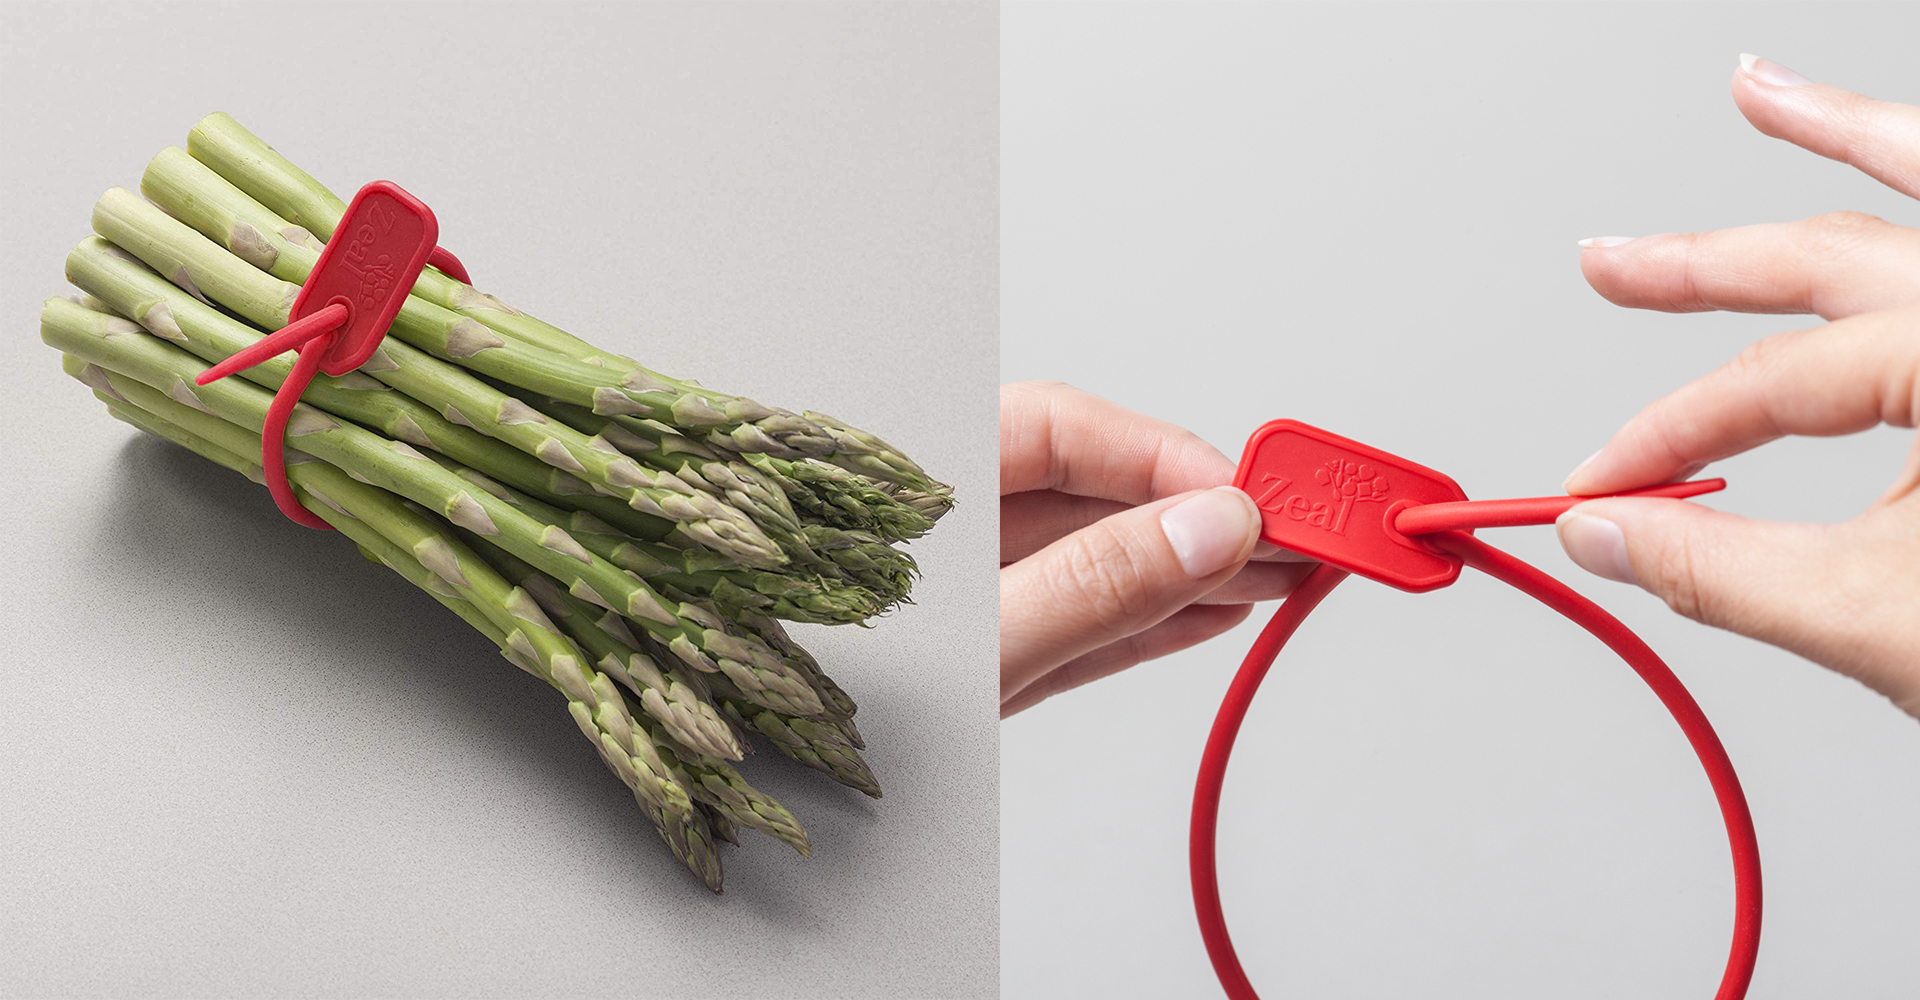 CKS Zeal 2018 range| Silicone ties - CKS - Zeal - Red - Asparagus - Tie - Design - Injection moulded - Matte finish - Cable - Hand - Tying - Logo